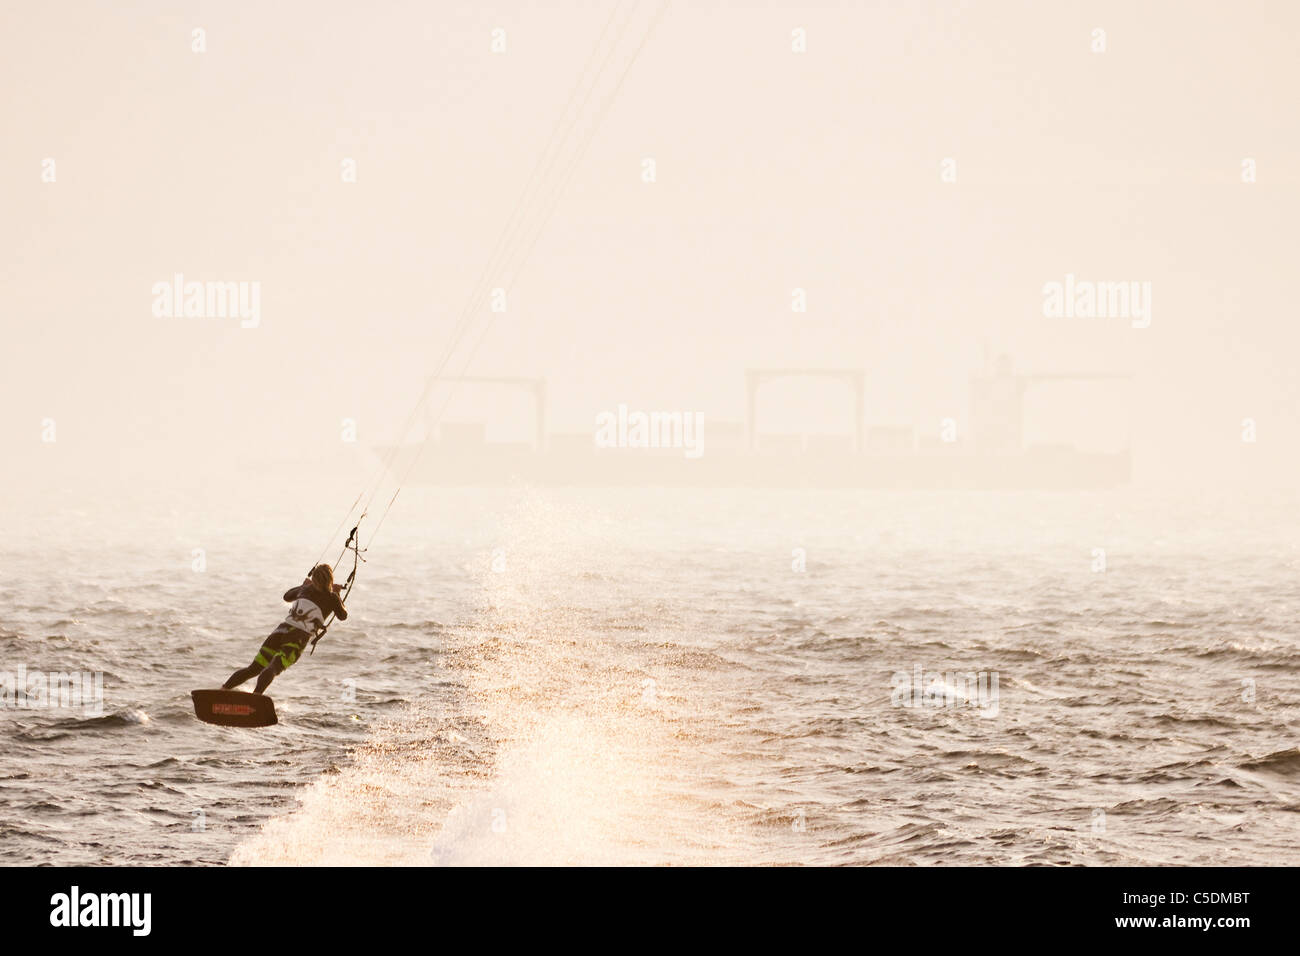 Kiteboarder launches off the crest of a wave, sending sea spray flying. - Stock Image